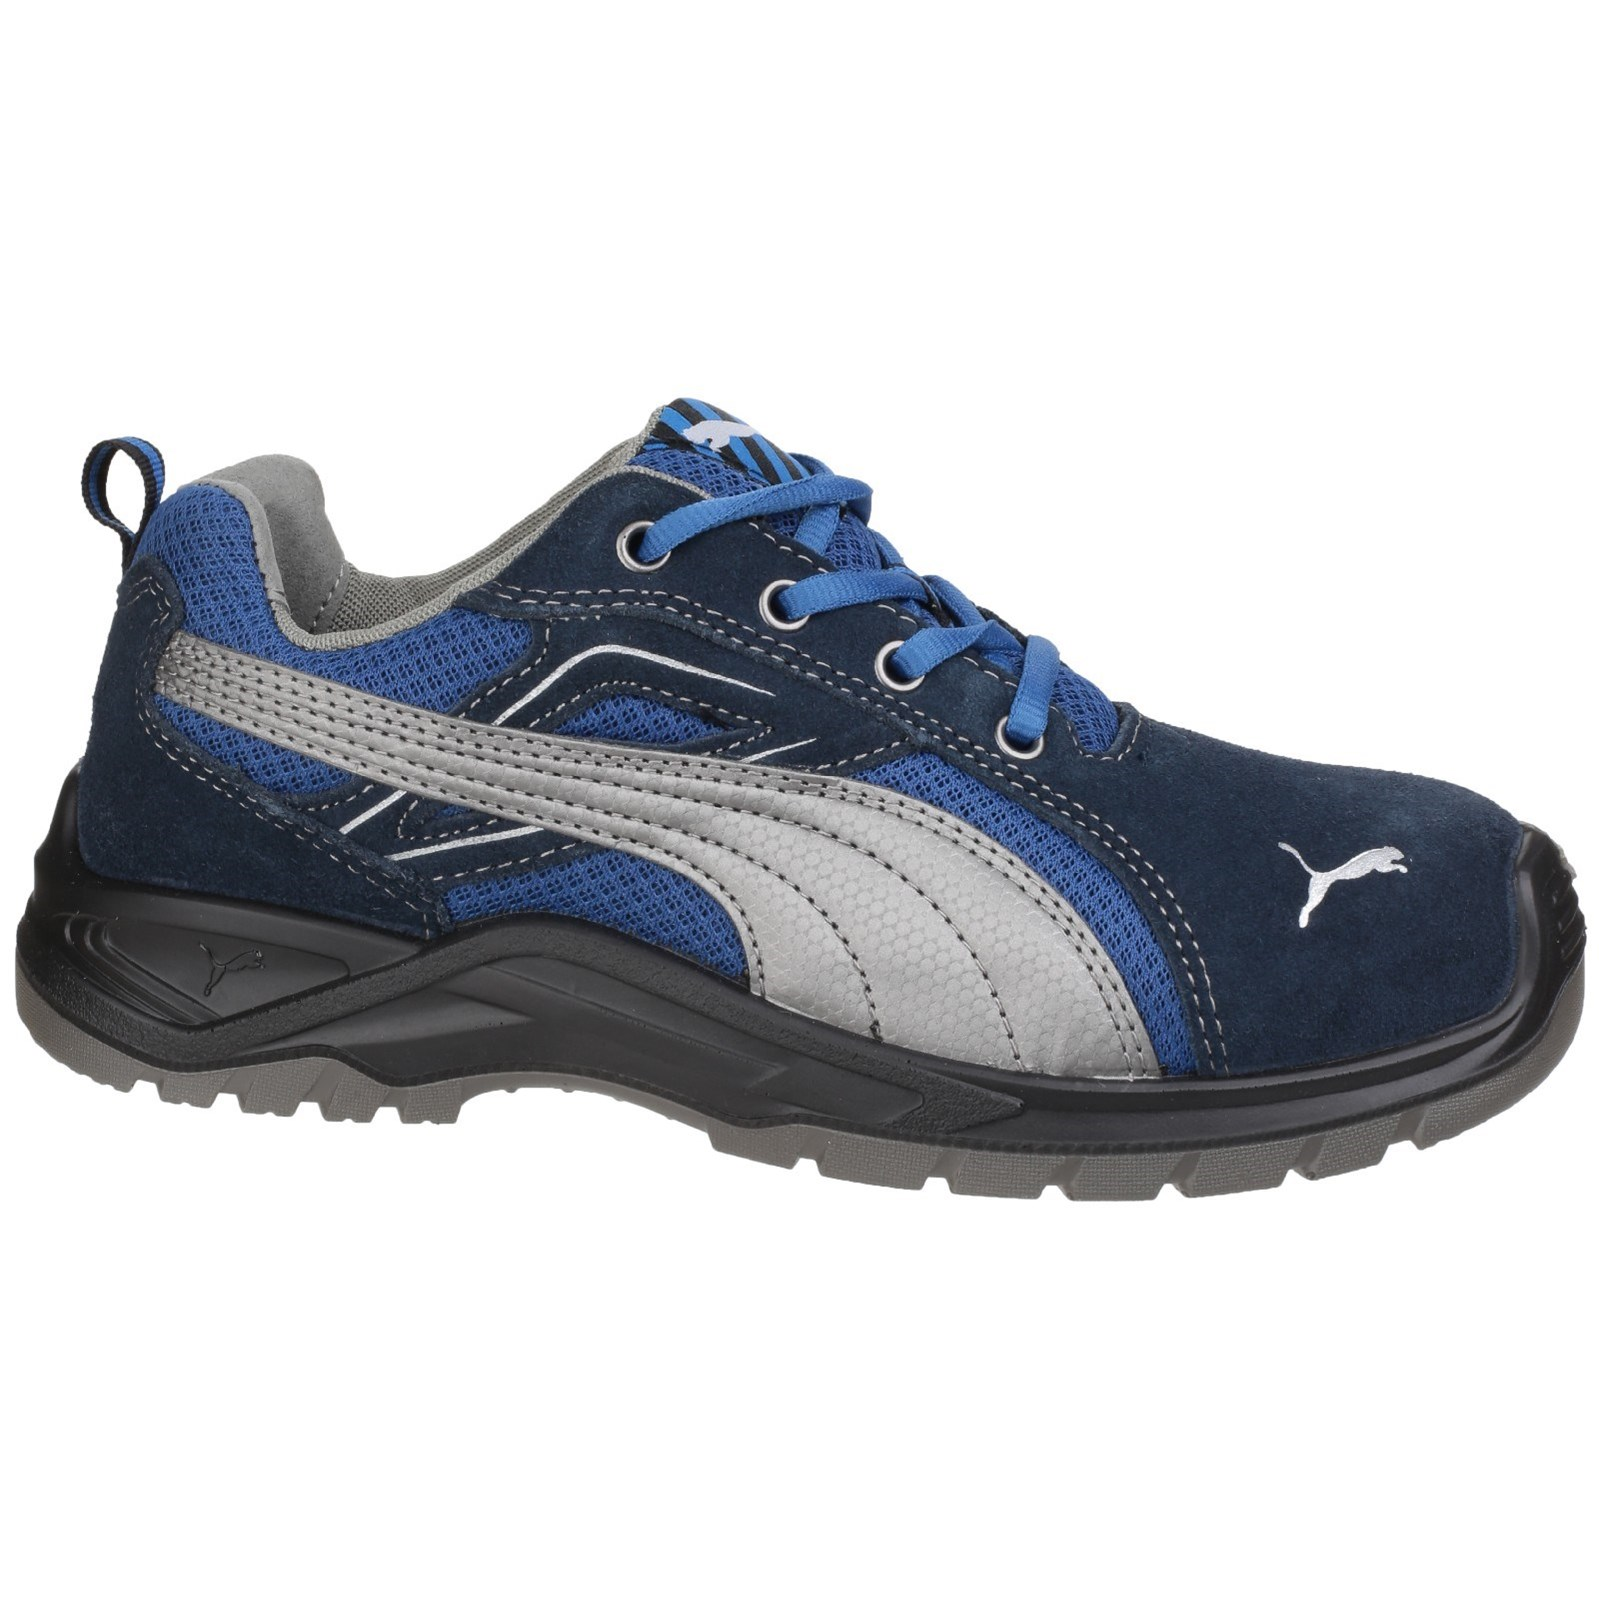 PUMA Omni Sky Low - Mens Safety Trainers - Steel Toe/Midsole S1P ...